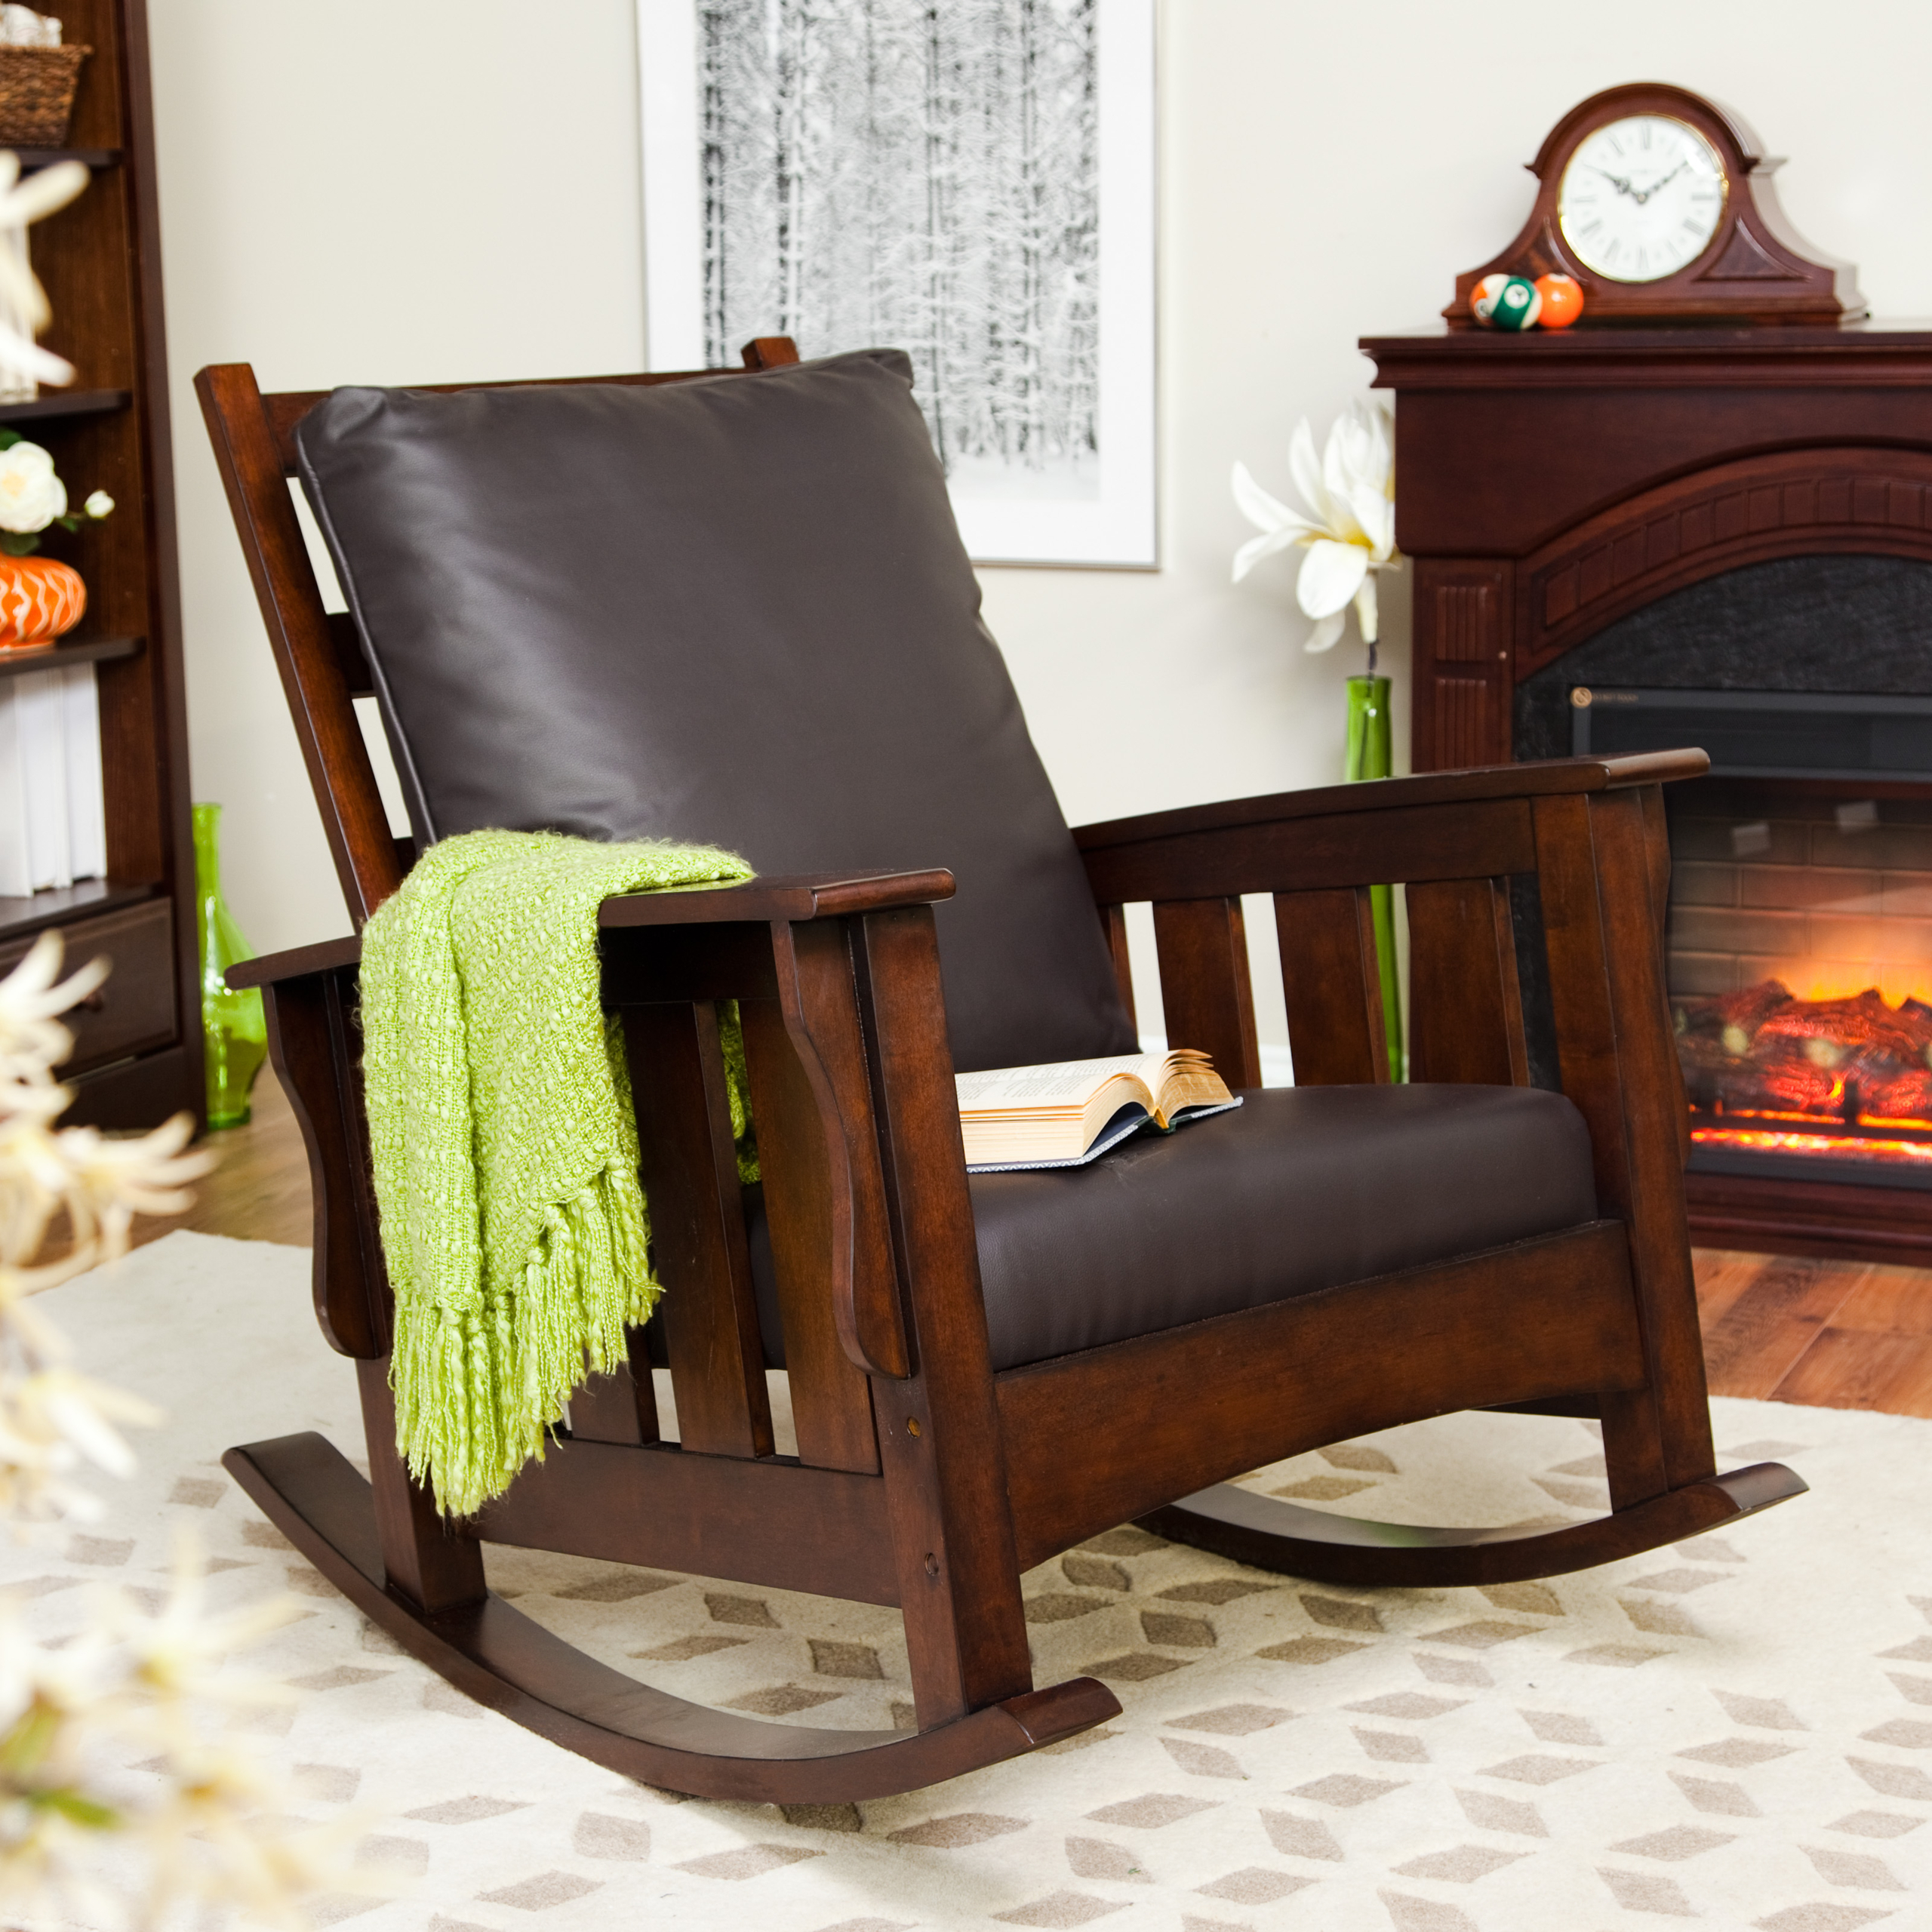 Modern Leather Rocking Chair Ideas On Foter